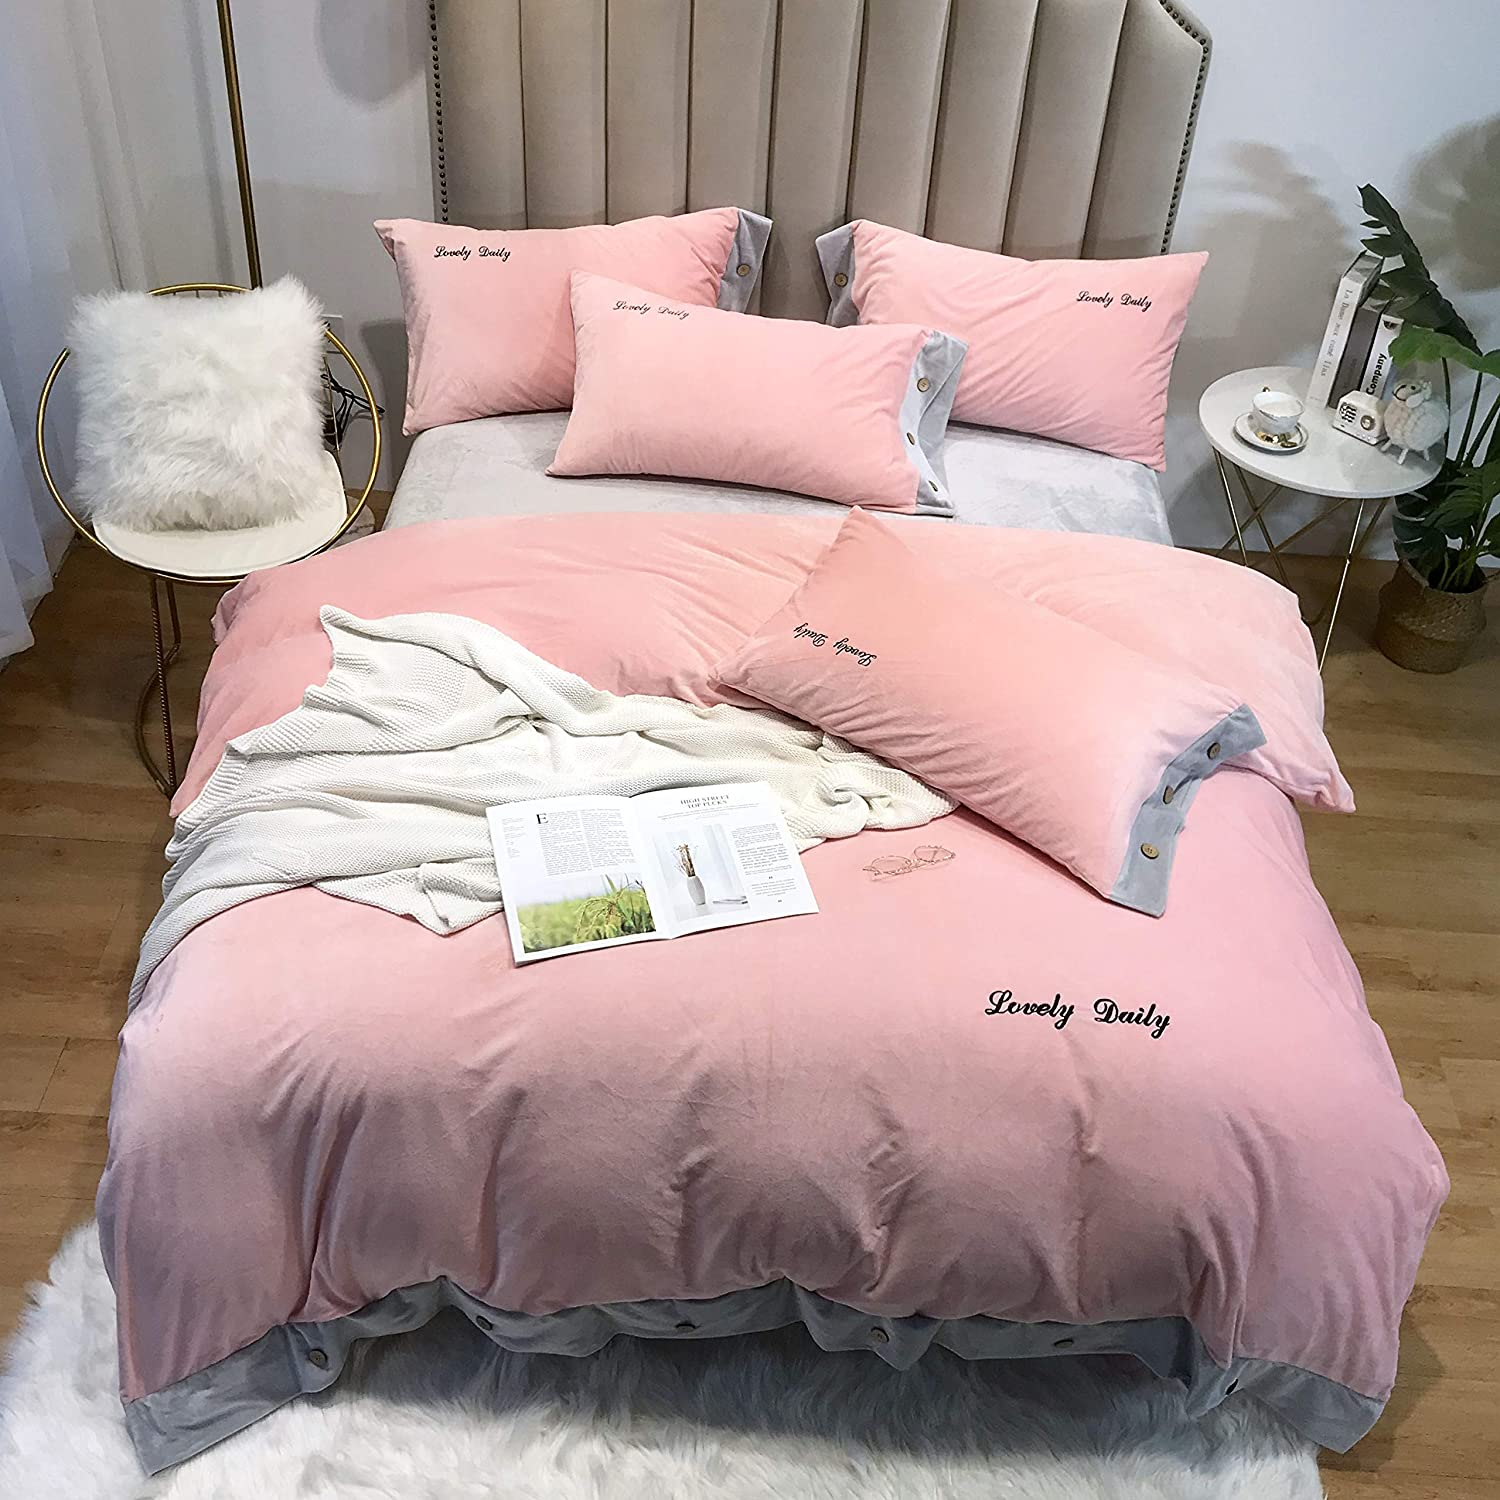 Quilt Set Duvet Cover Sets,European Style Simple Hypoallergenic Comfort All-Season 4 Piece Home Bedding Fade Resistant-H-200x220cm(79x87inch)